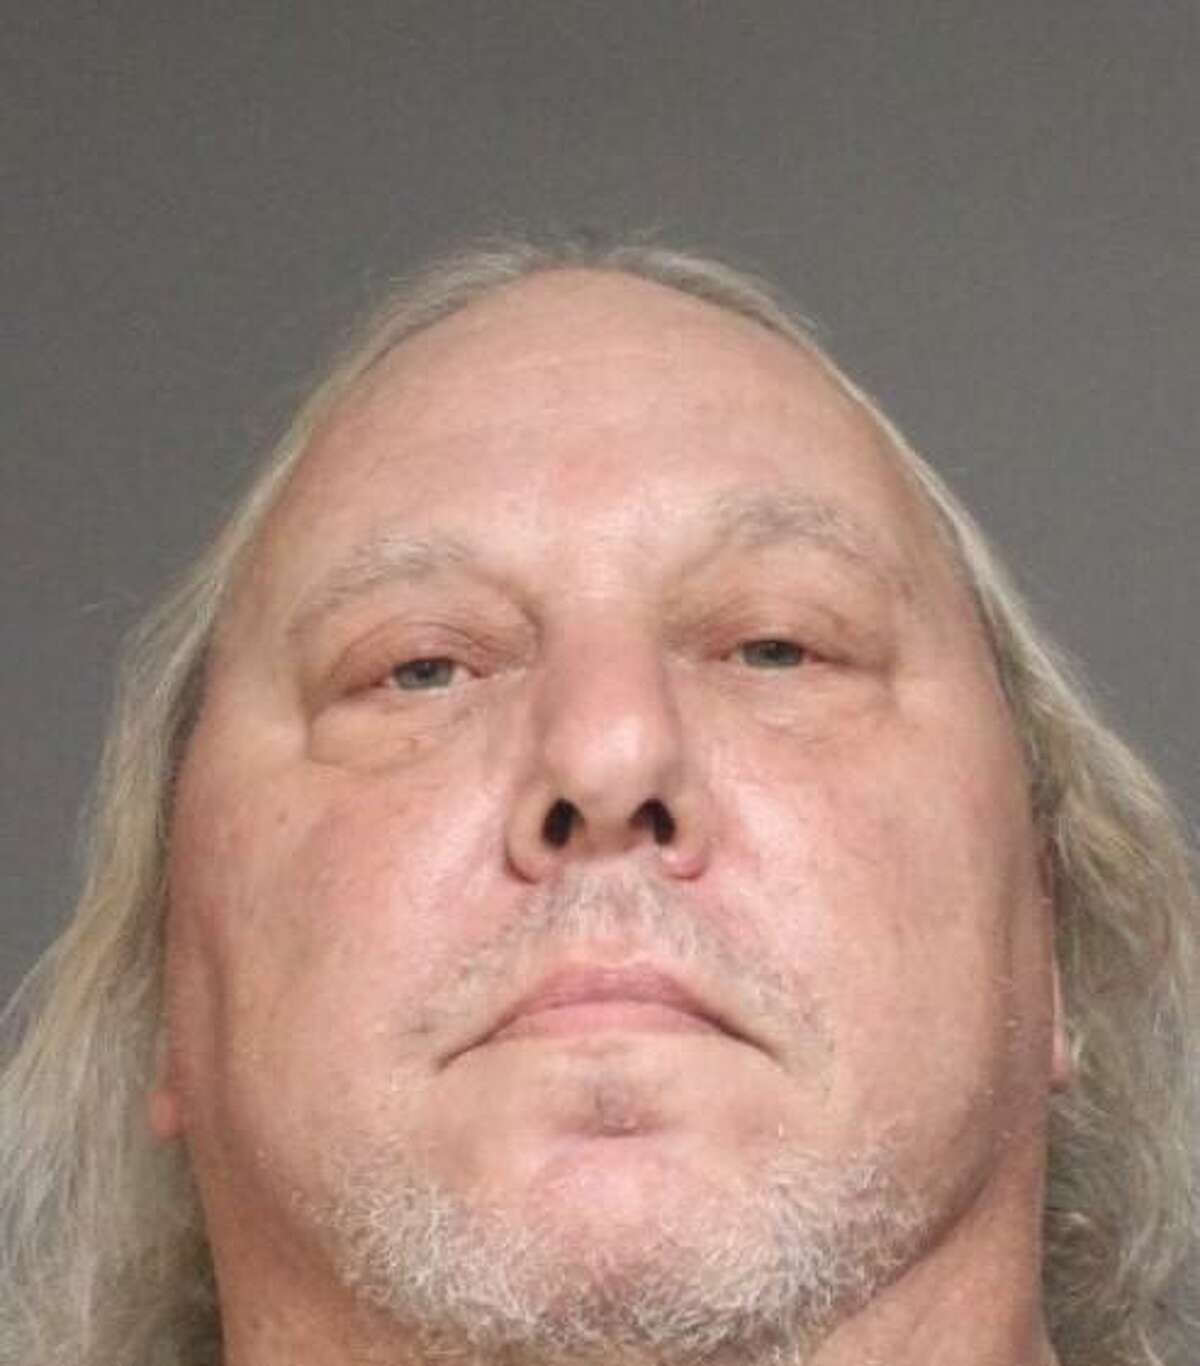 Michael Palmieri, a 60-year-old Fairfield resident, was been arrested and charged with second-degree forgery and conspiracy to commit second degree forgery, according to police.